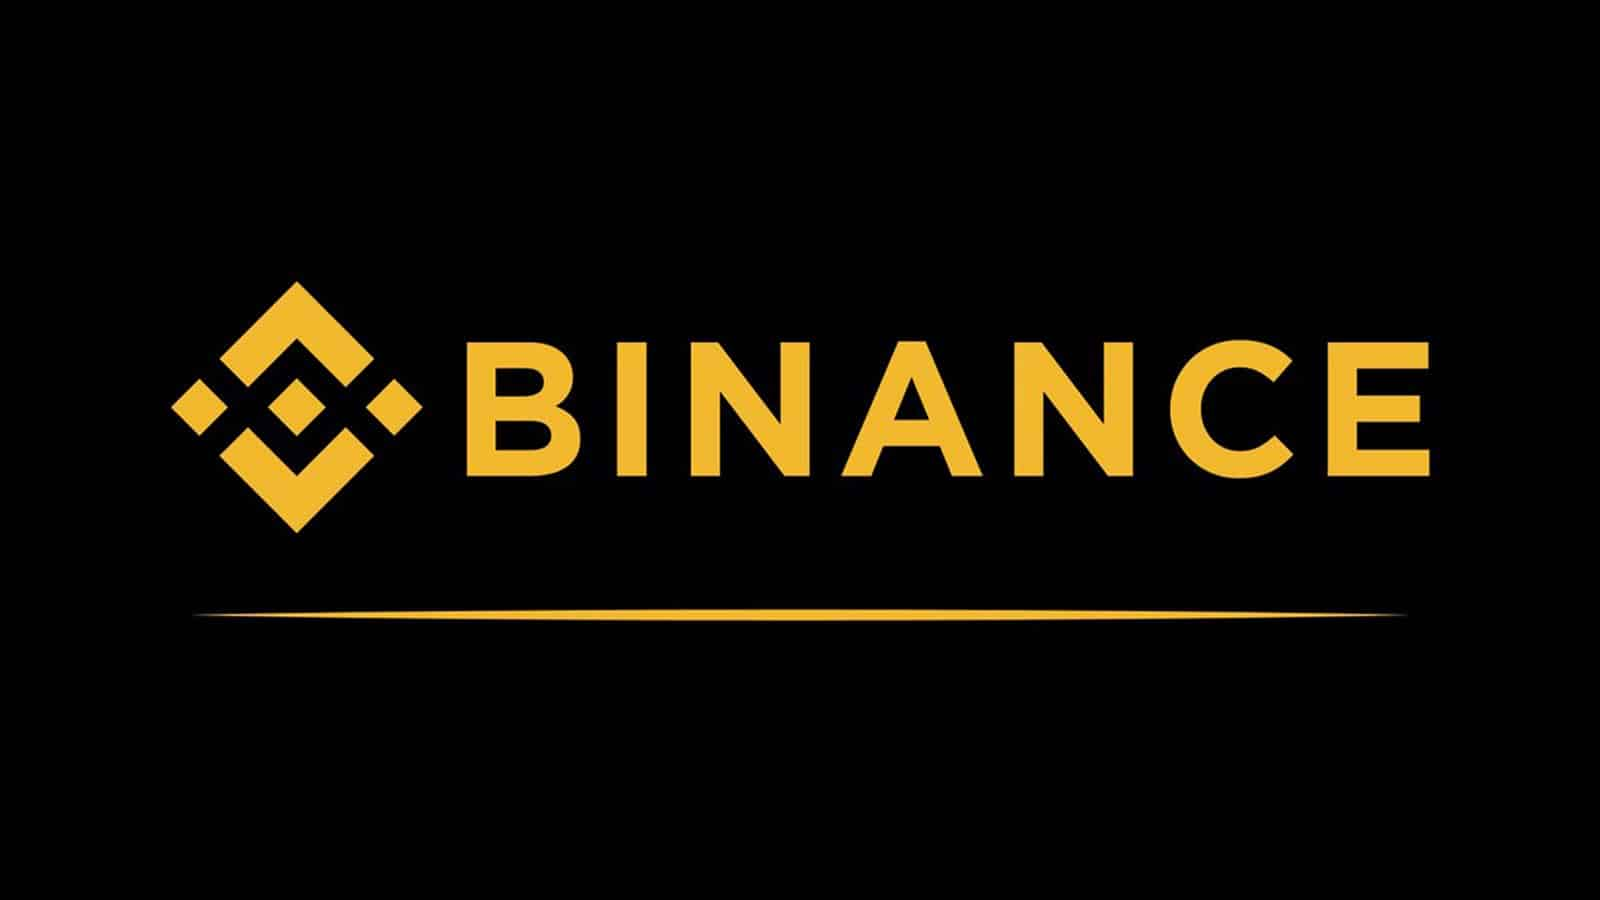 Binance Announces Cross Margin Trading For Uniswap [UNI] Token